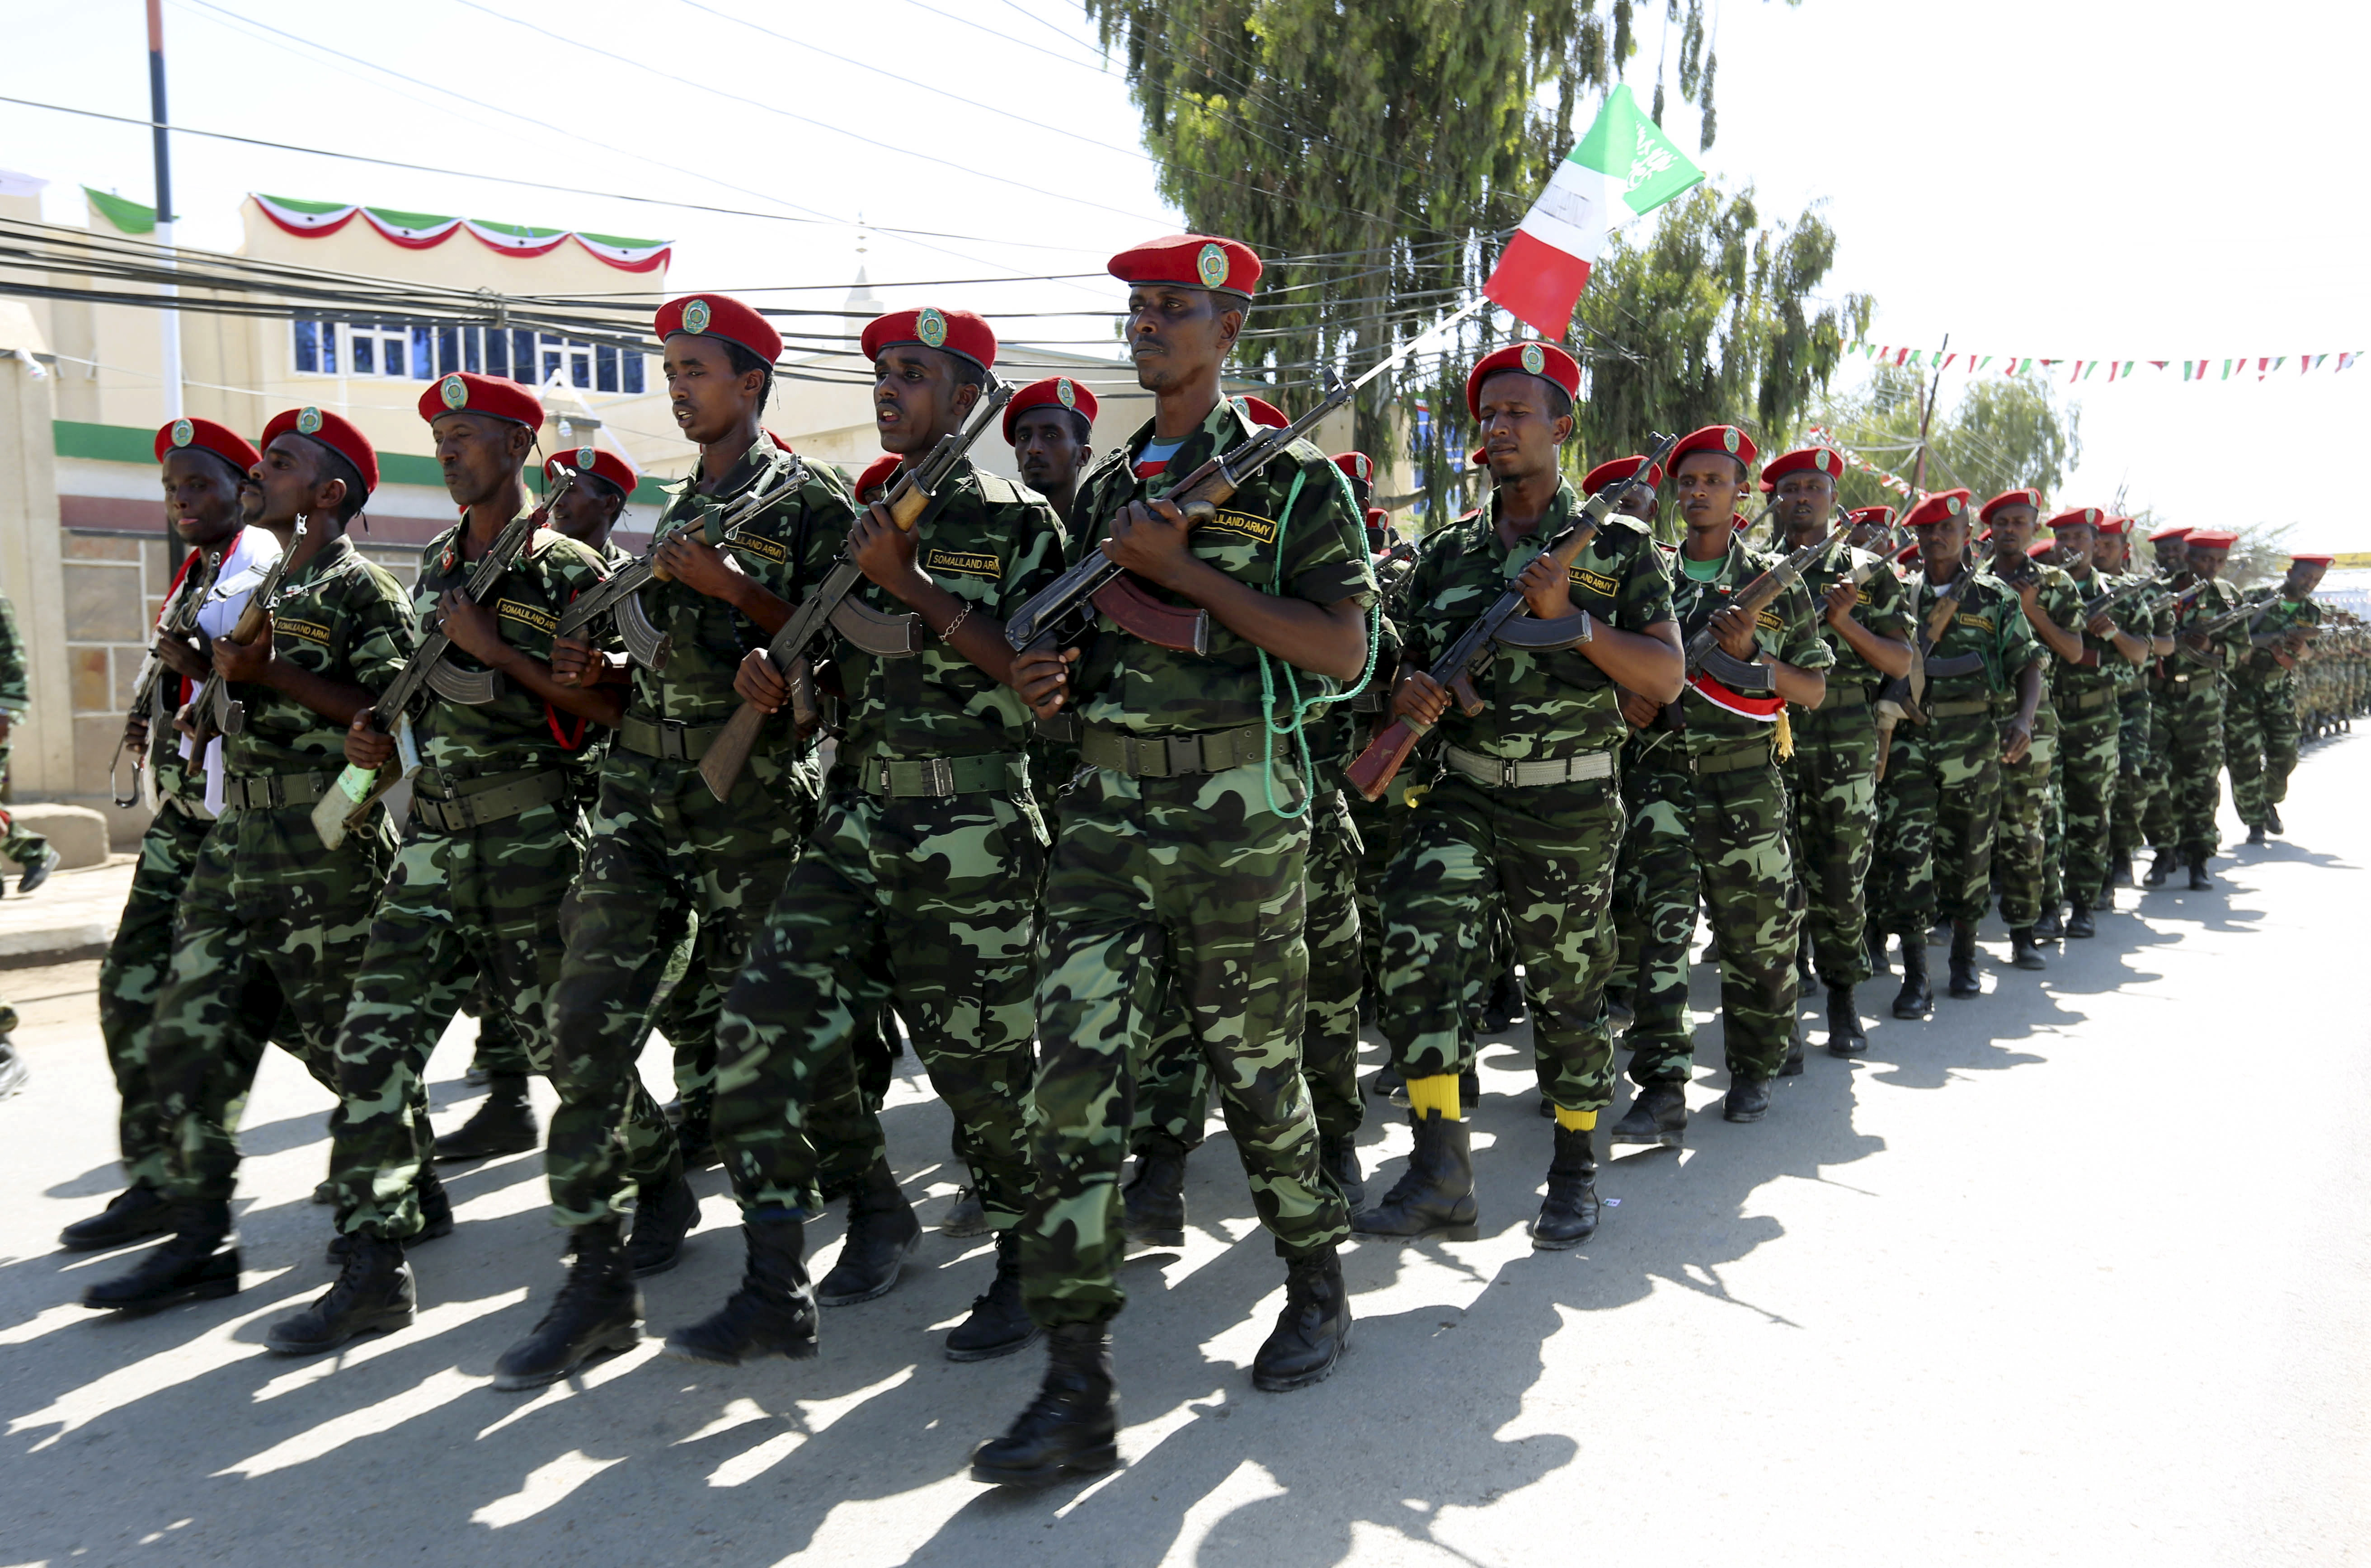 Soldiers participate in a military parade to mark the 24th self-declared independence day for the breakaway Somaliland nation in the capital Hargeysa, May 18, 2015.